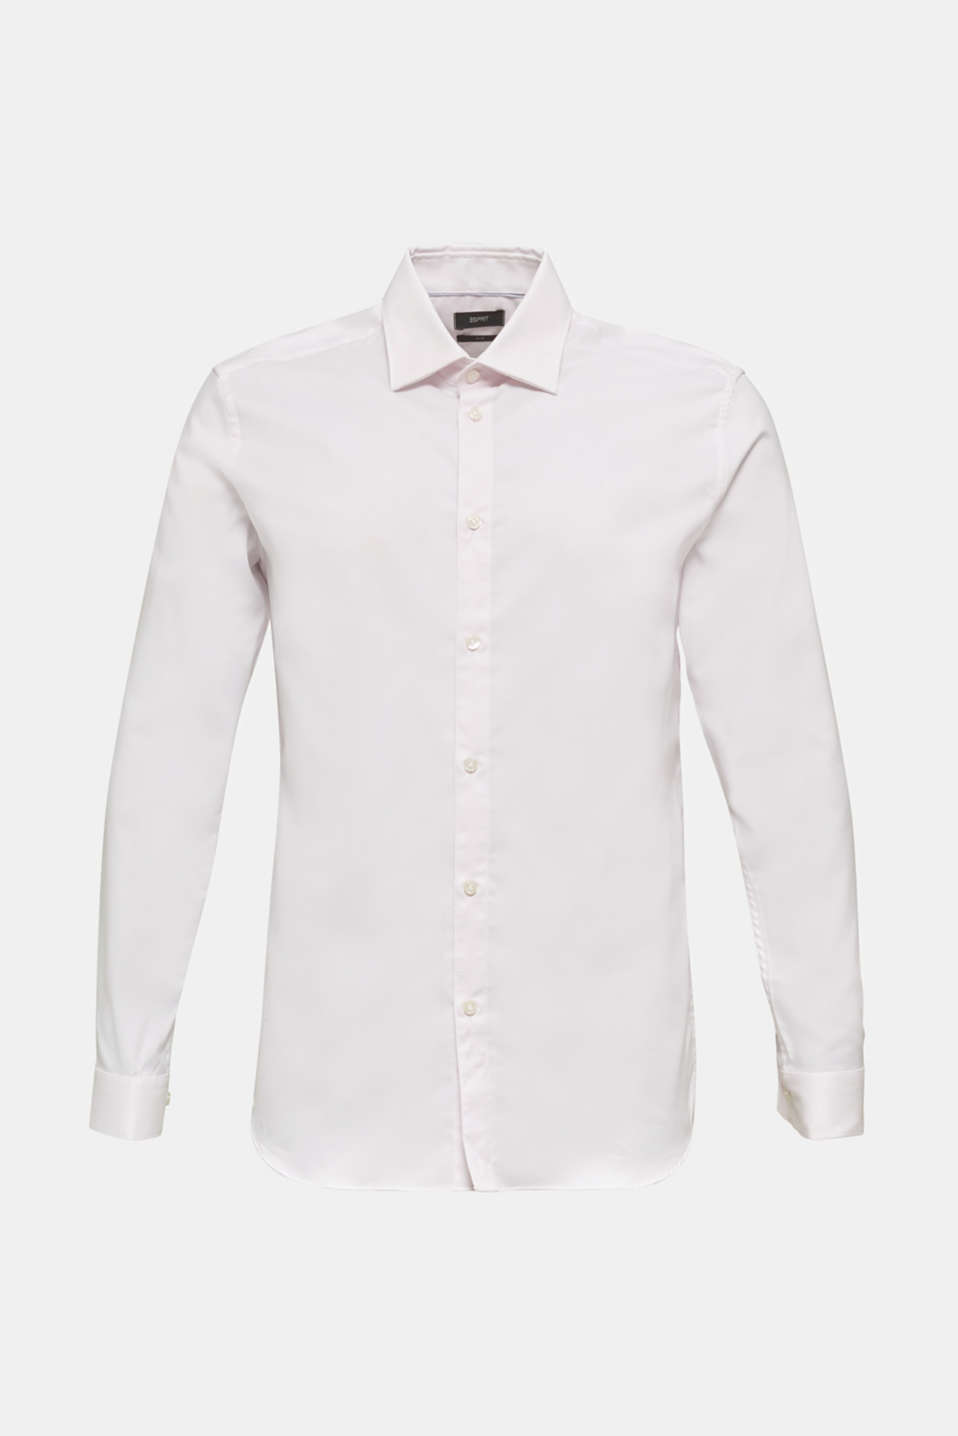 Textured shirt made of 100% cotton, LIGHT PINK 5, detail image number 8